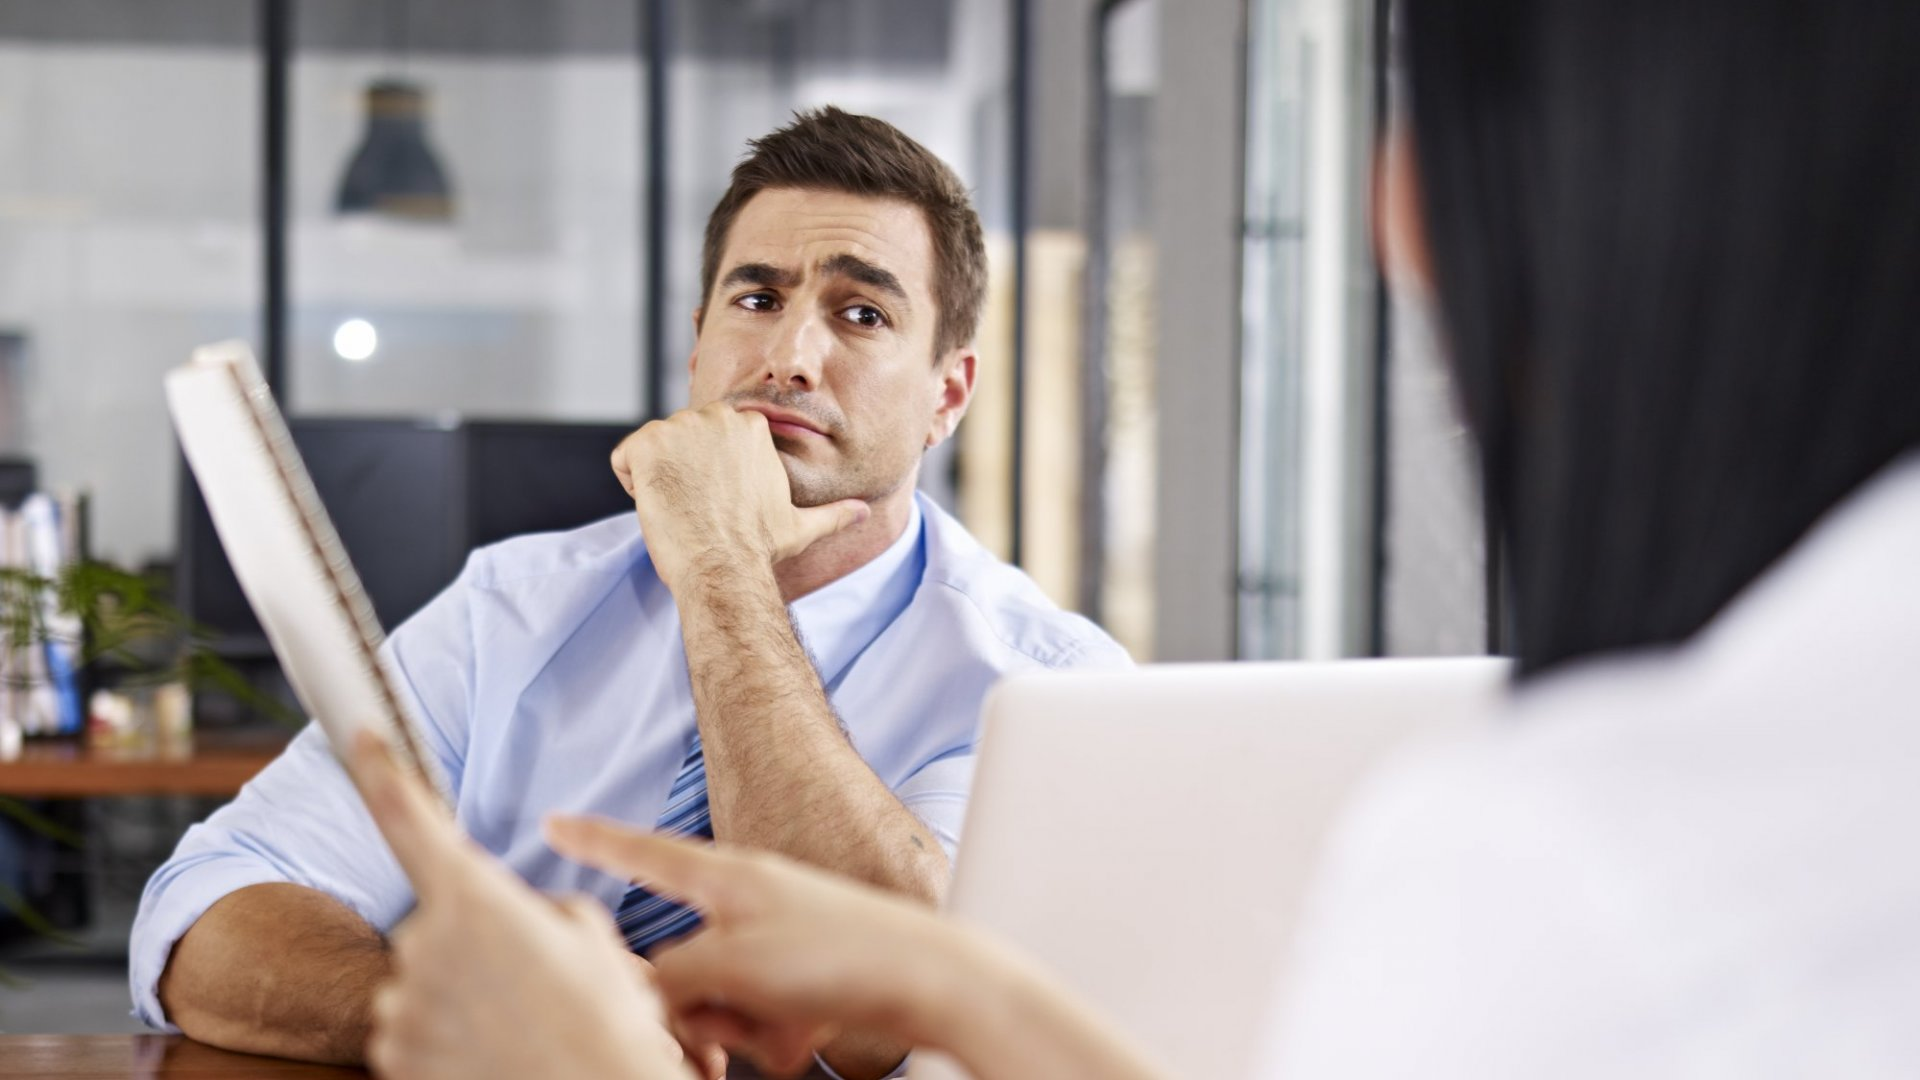 9 Weird Interview Questions Companies Use to Reveal Your True Self